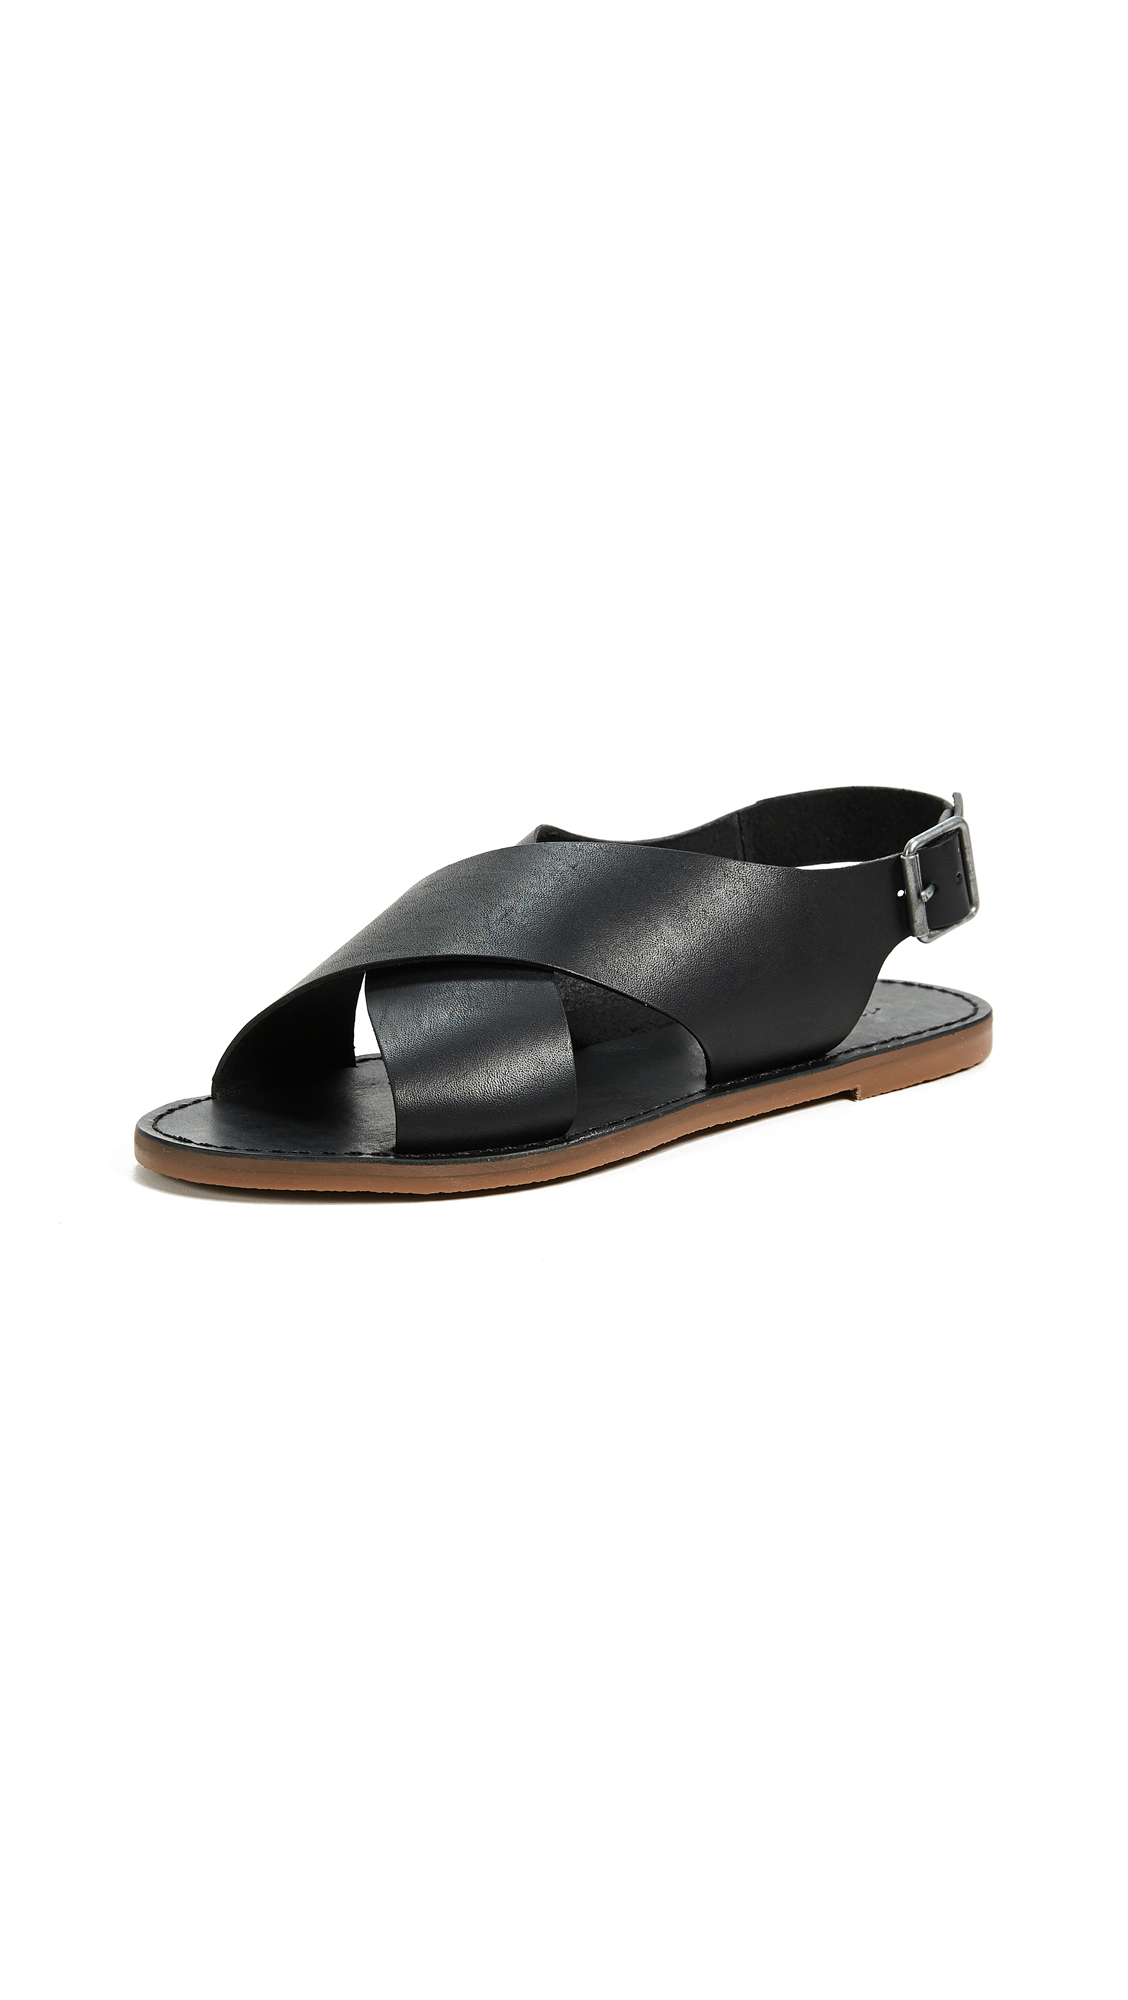 Madewell Reka Crisscross Outstock Sandals - True Black